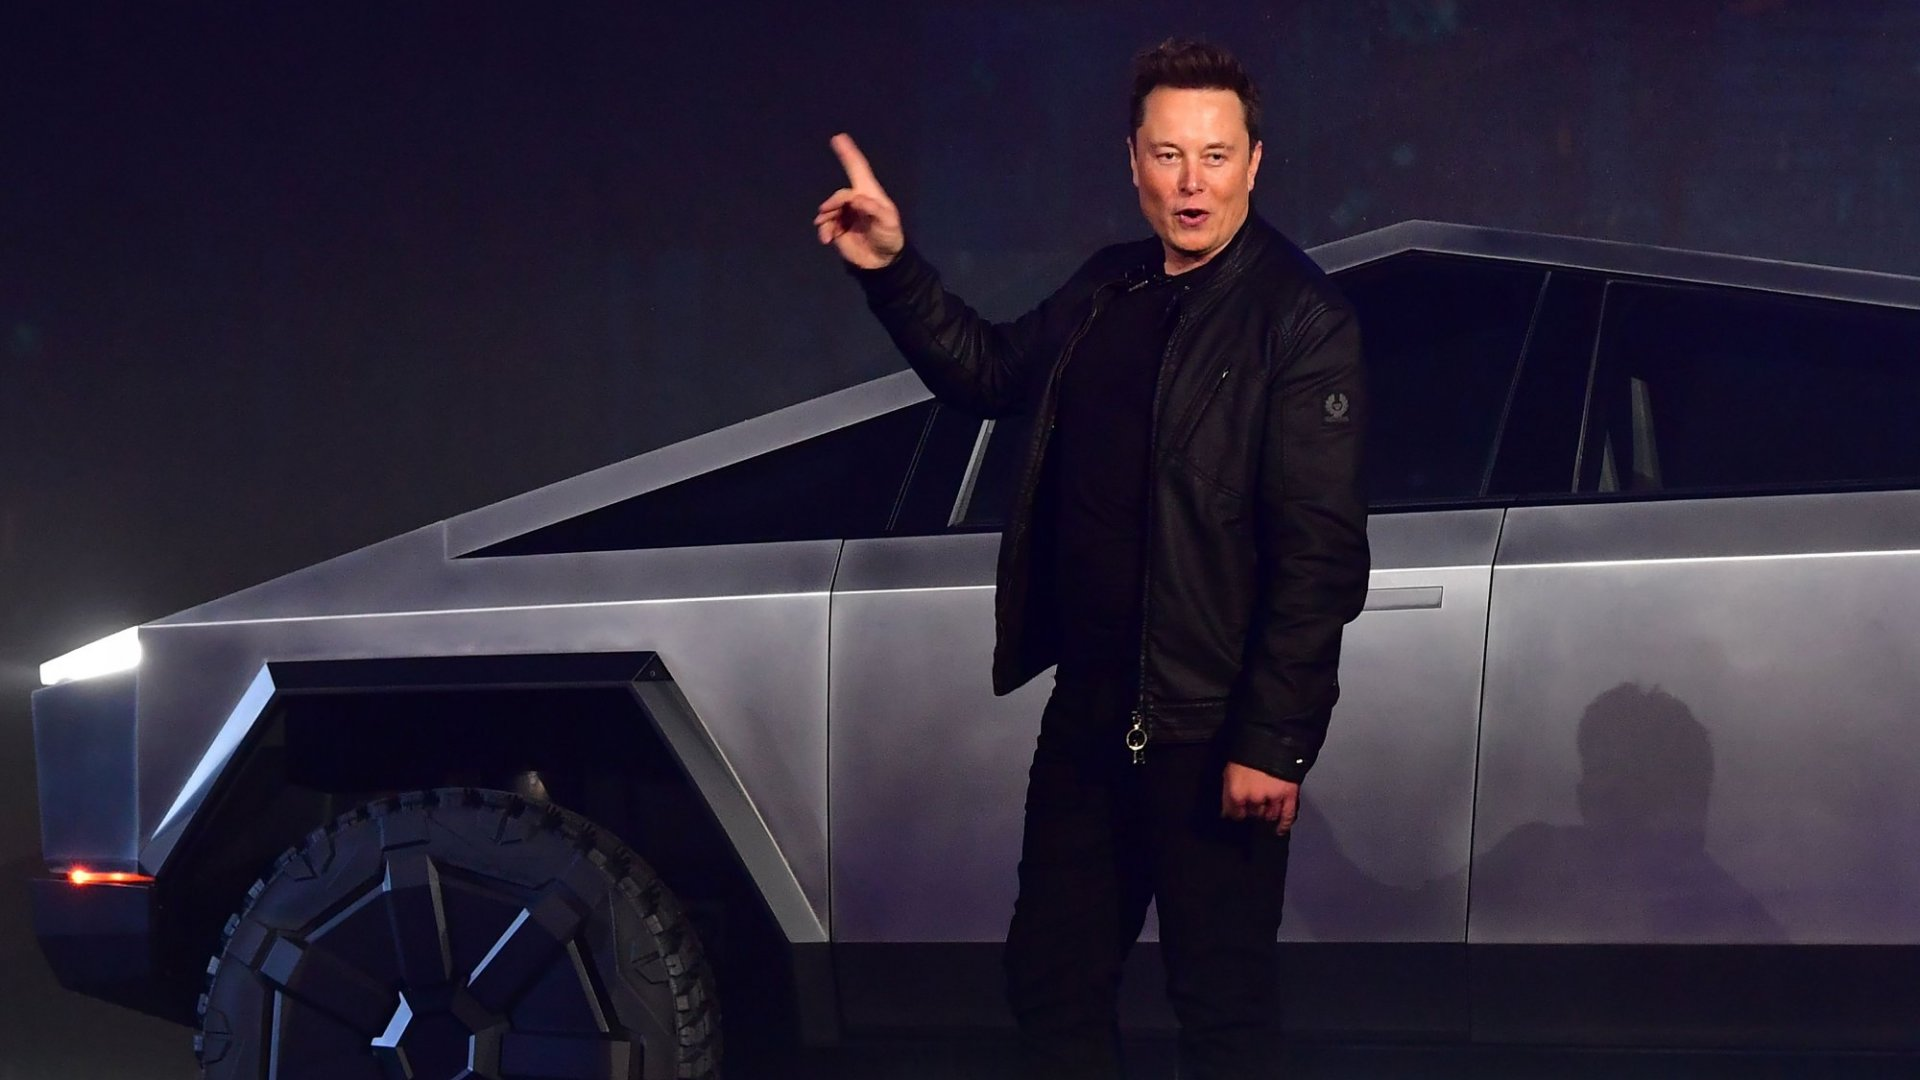 Elon Musk Doesn't Care Whether People Buy His Cybertruck, and That's Why His Product Strategy Is Genius